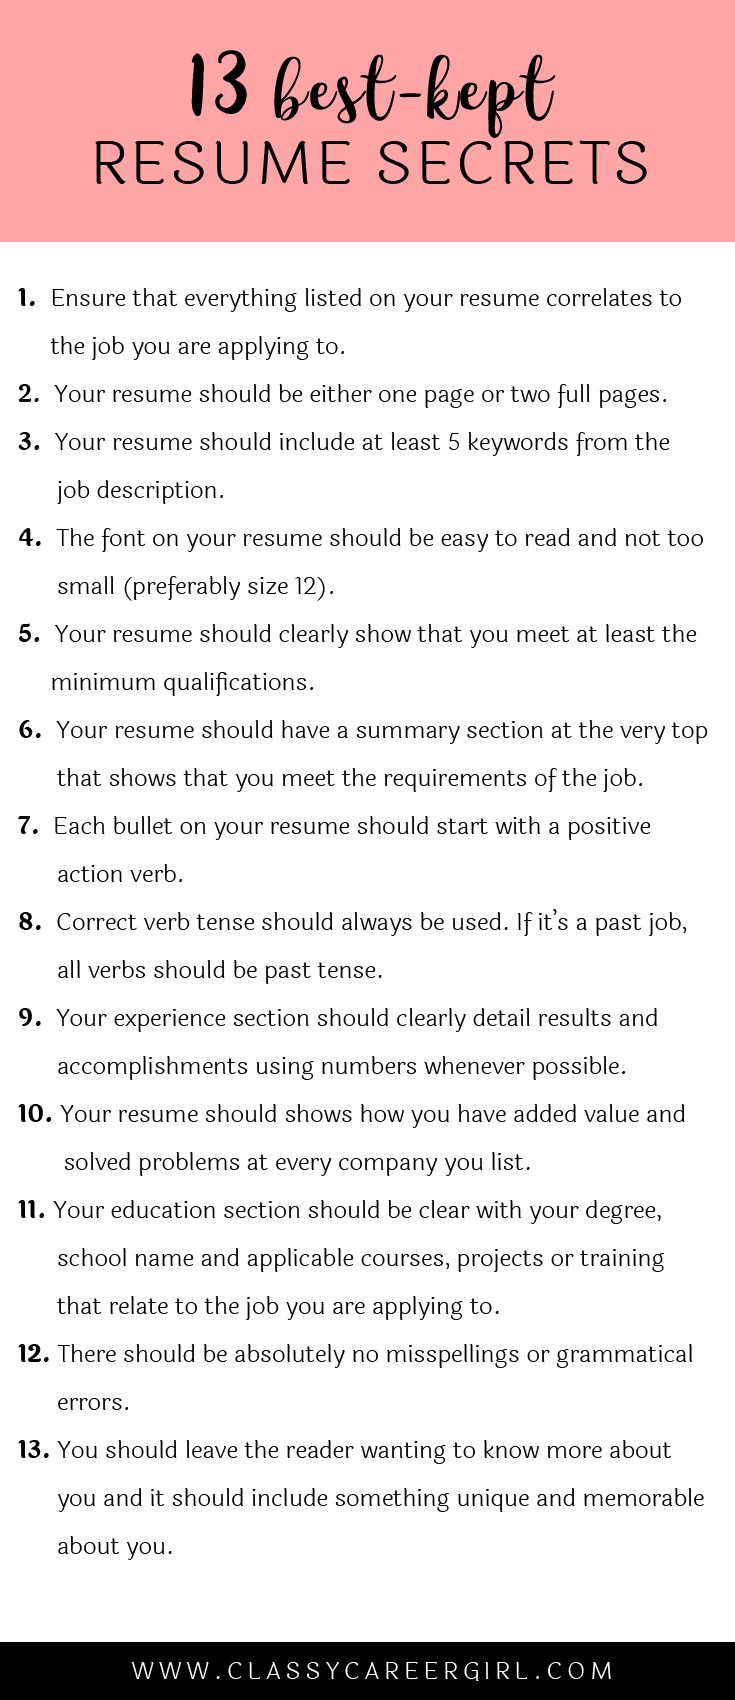 Opposenewapstandardsus  Stunning  Ideas About Resume On Pinterest  Cv Format Resume Cv And  With Entrancing Some Hiring Managers Will Toss Your Resume Out If You Dont Know These  With Lovely Email Resume Also Resume Templates Word Free In Addition Objective For Resume Example And Cover Letter Resume Examples As Well As Modern Resumes Additionally  Resume Templates From Pinterestcom With Opposenewapstandardsus  Entrancing  Ideas About Resume On Pinterest  Cv Format Resume Cv And  With Lovely Some Hiring Managers Will Toss Your Resume Out If You Dont Know These  And Stunning Email Resume Also Resume Templates Word Free In Addition Objective For Resume Example From Pinterestcom